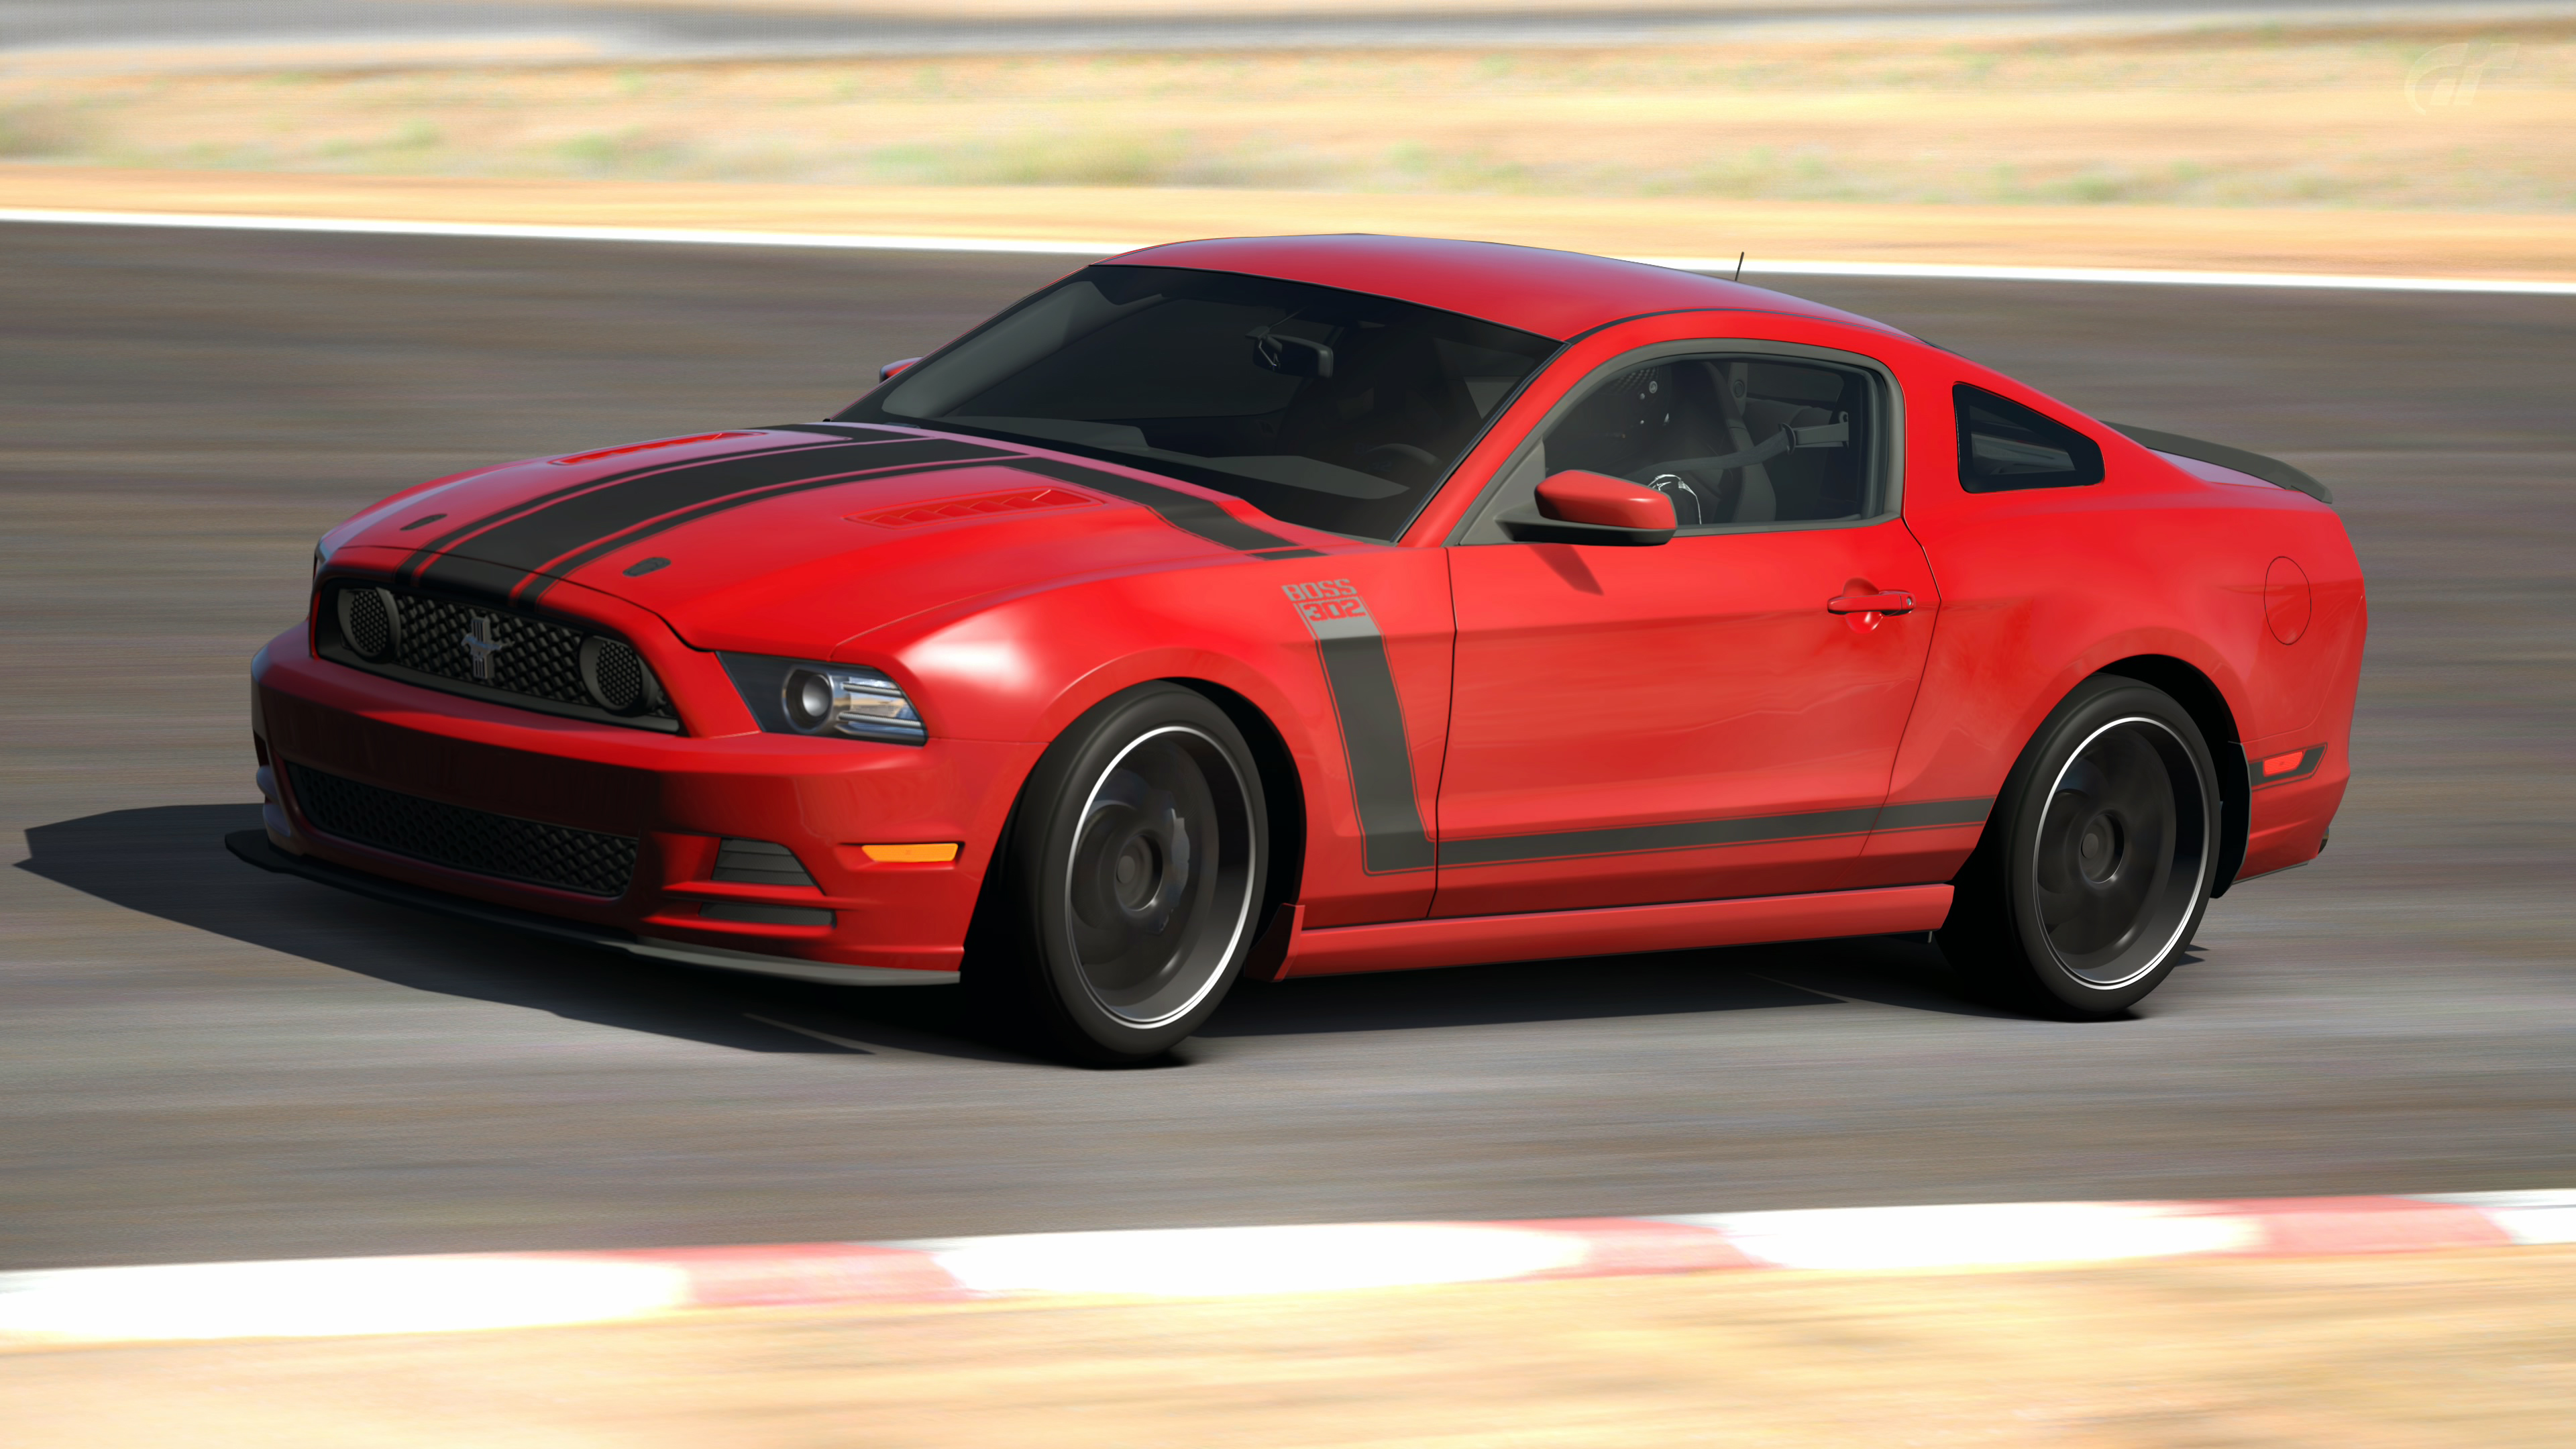 2013 Ford Mustang Boss 302 (Gran Turismo 6) by Vertualissimo on ...